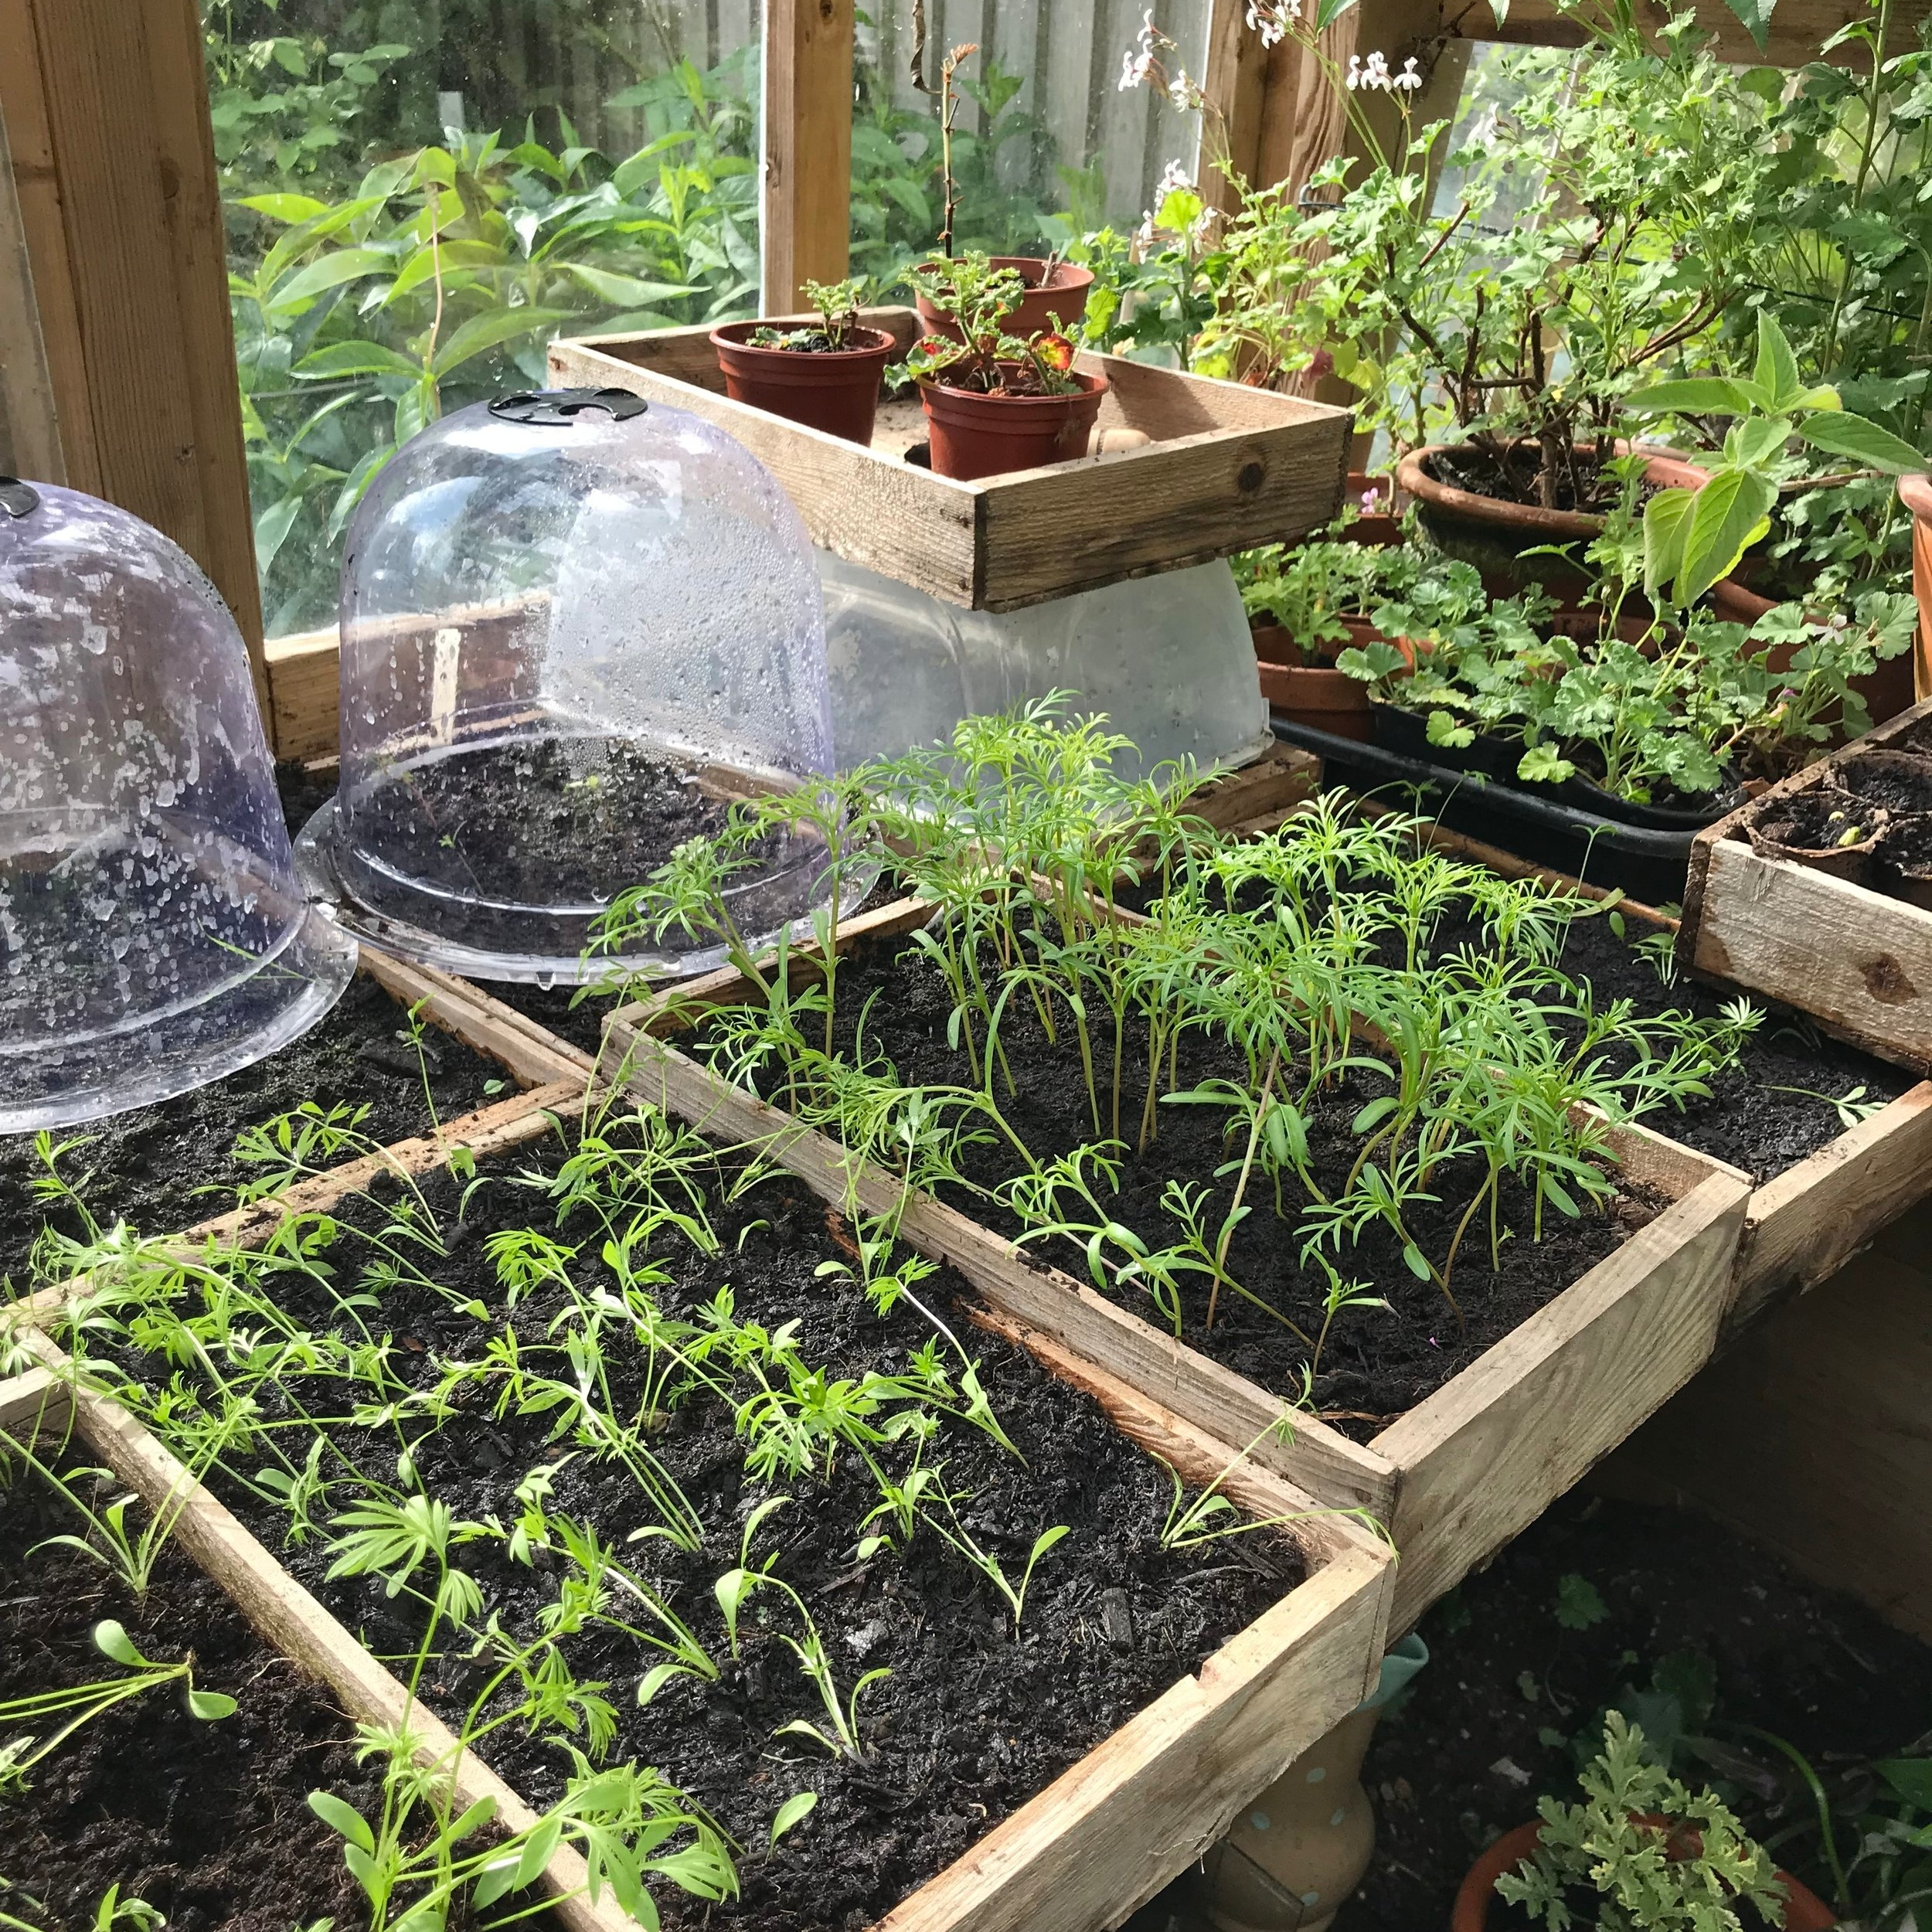 Mandy's Greenhouse is full of seedlings ready to go out into the big wide world.